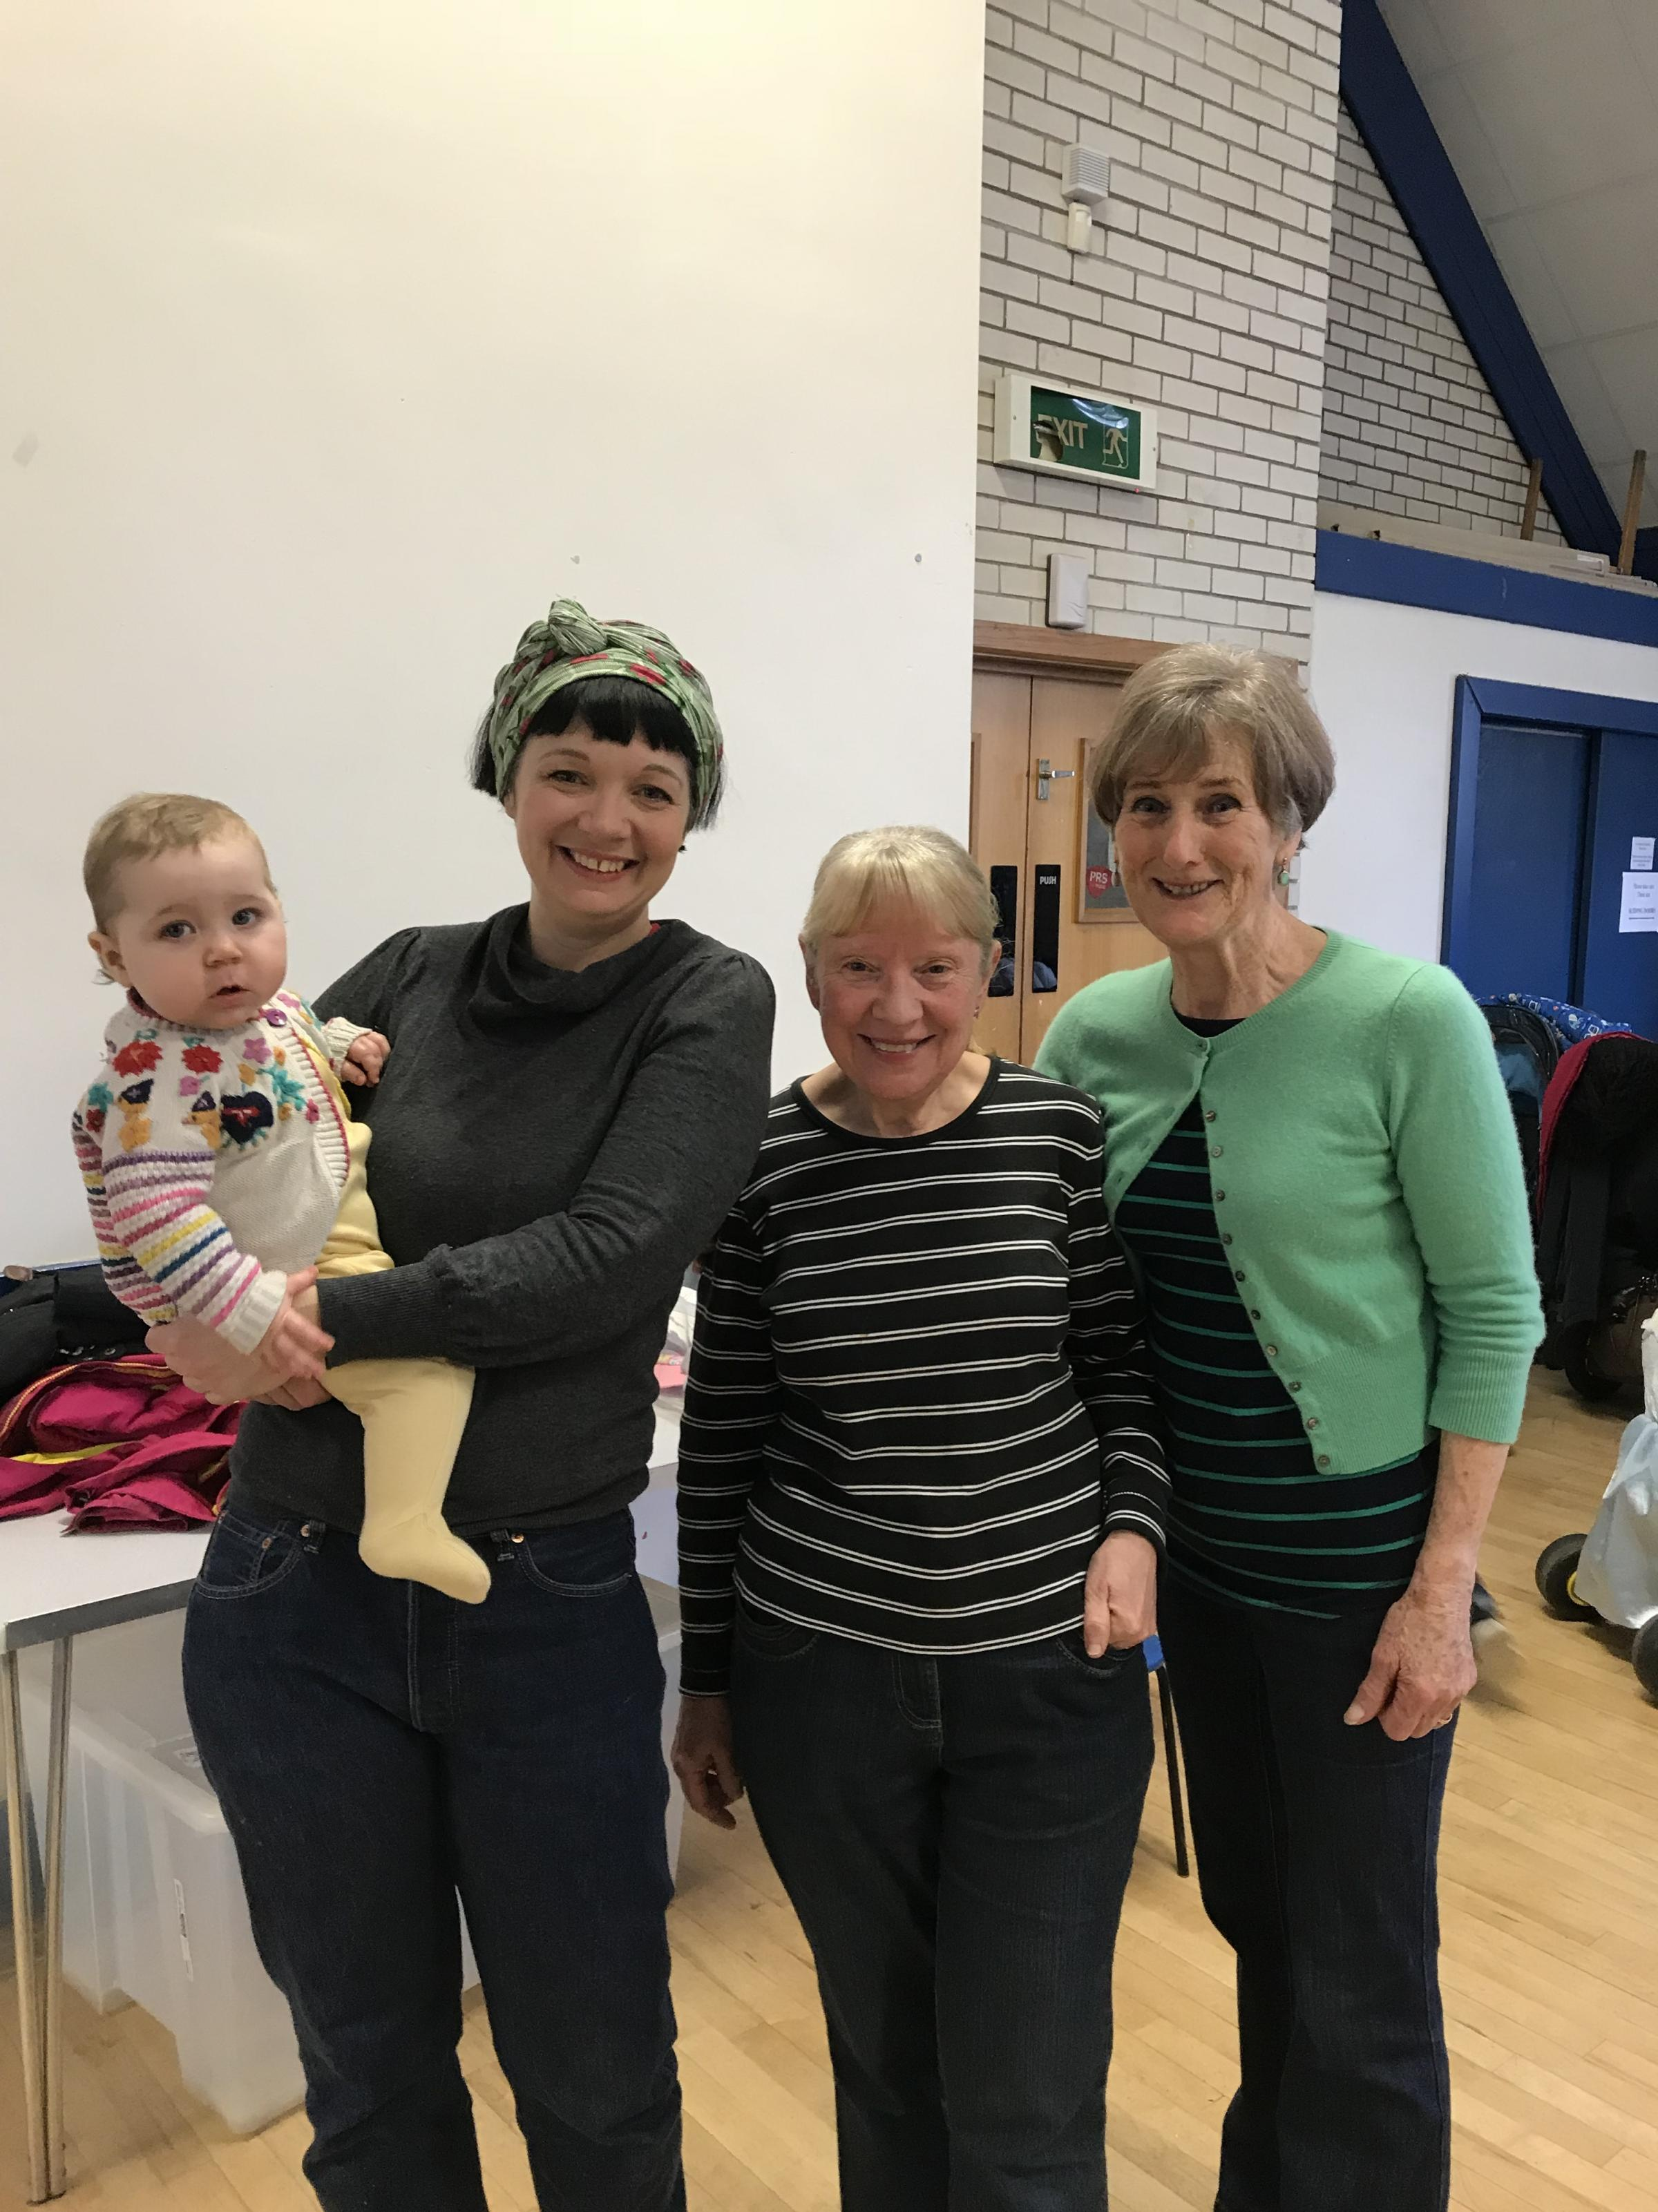 From right to left: Pat Braey, Marion Rowlands, Shelley Barrett and her baby Maude